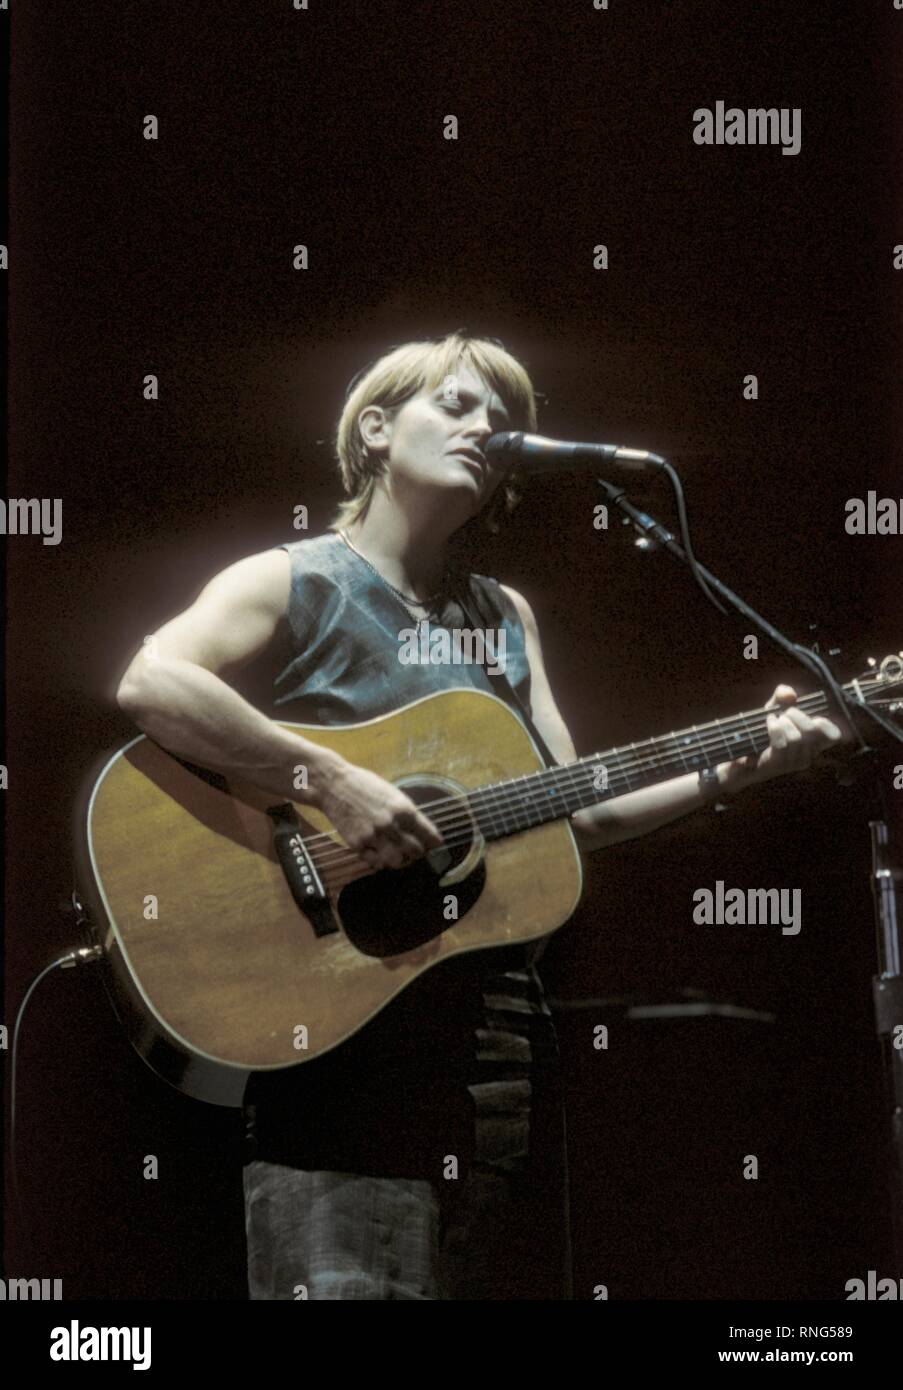 Grammy Award-winning singer, songwriter Shawn Colvin is shown performing 'live' in concert. - Stock Image